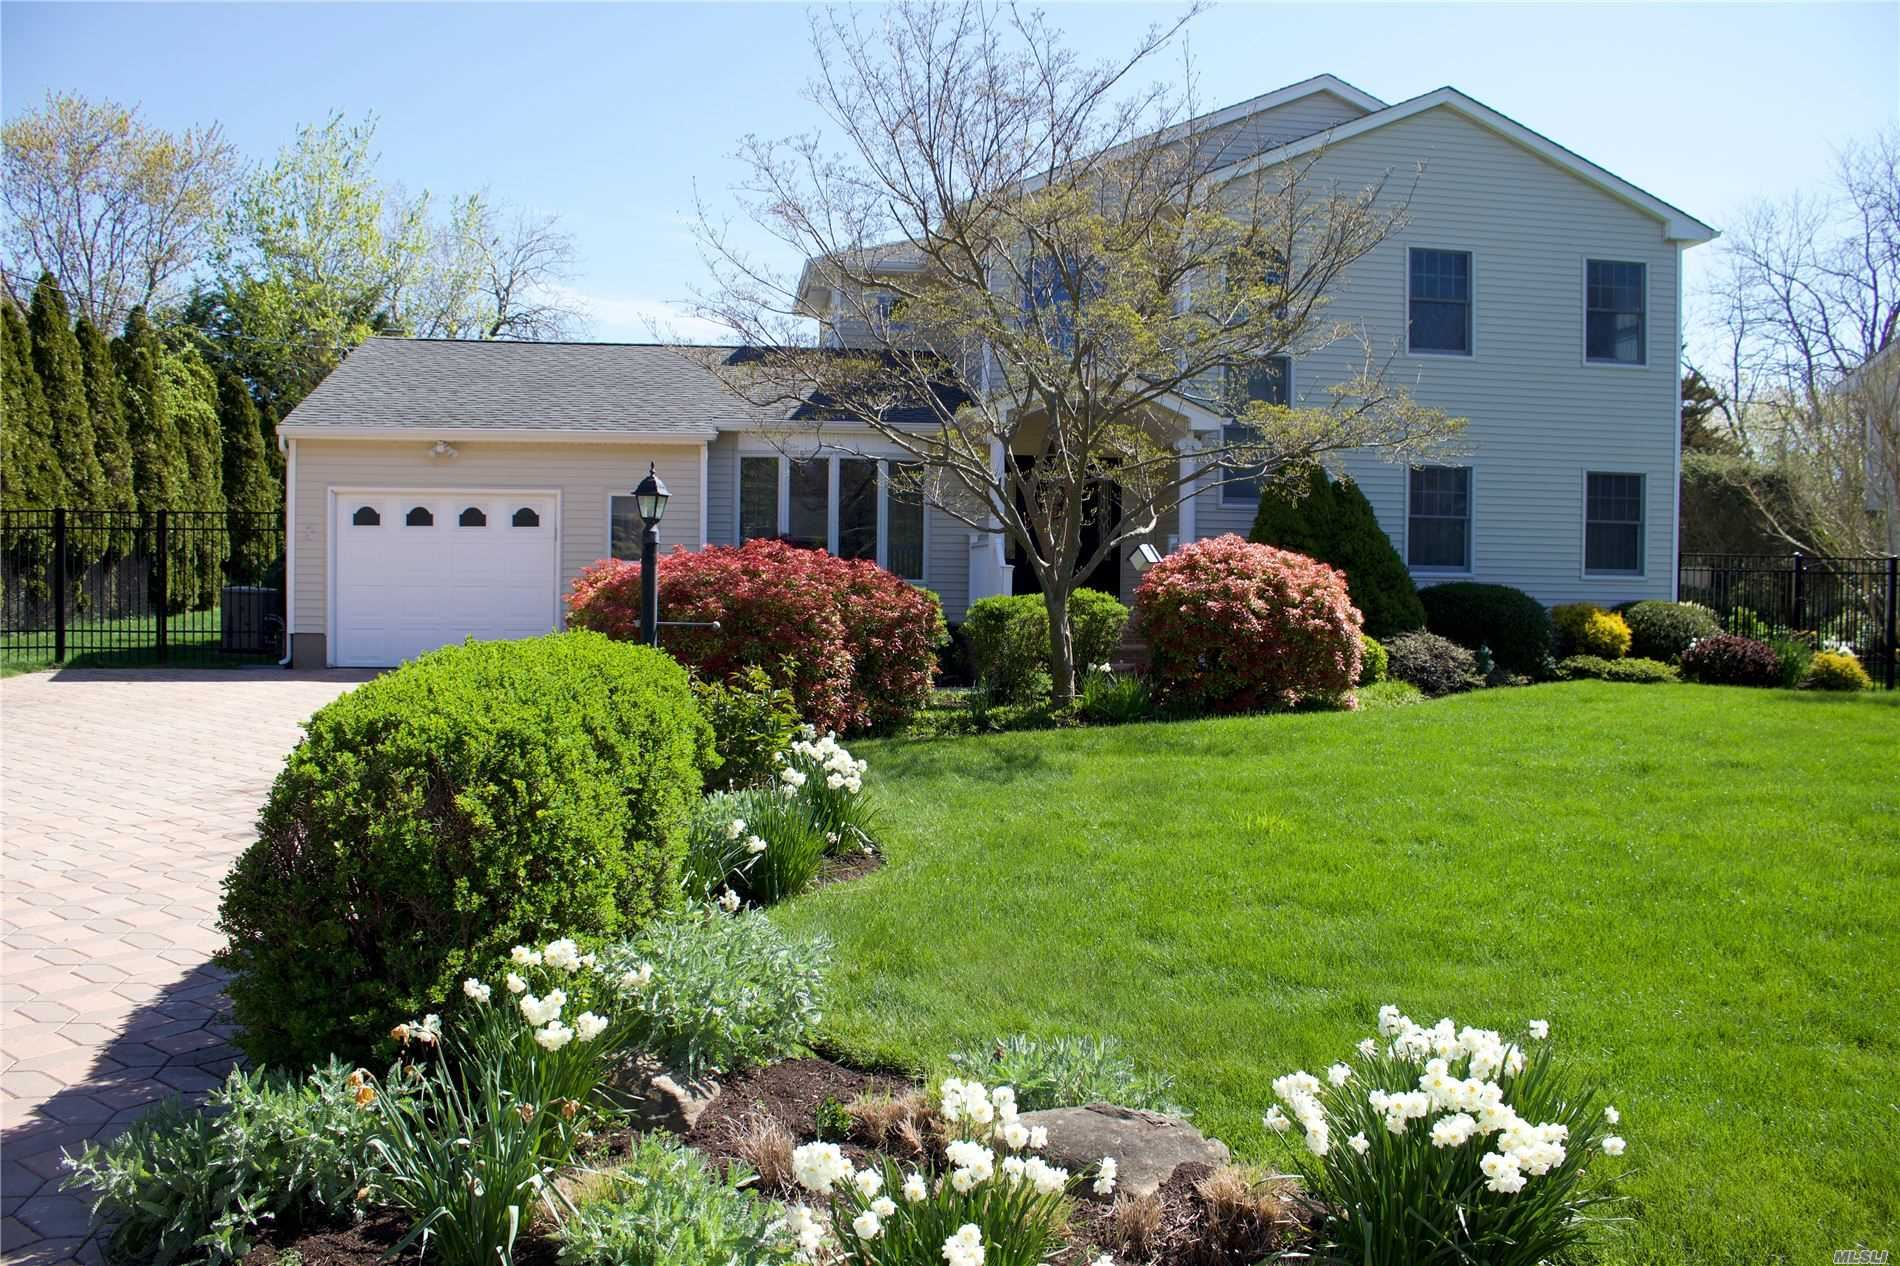 200 Green Hill Lane, Greenport, NY 11944 - MLS#: 3214325